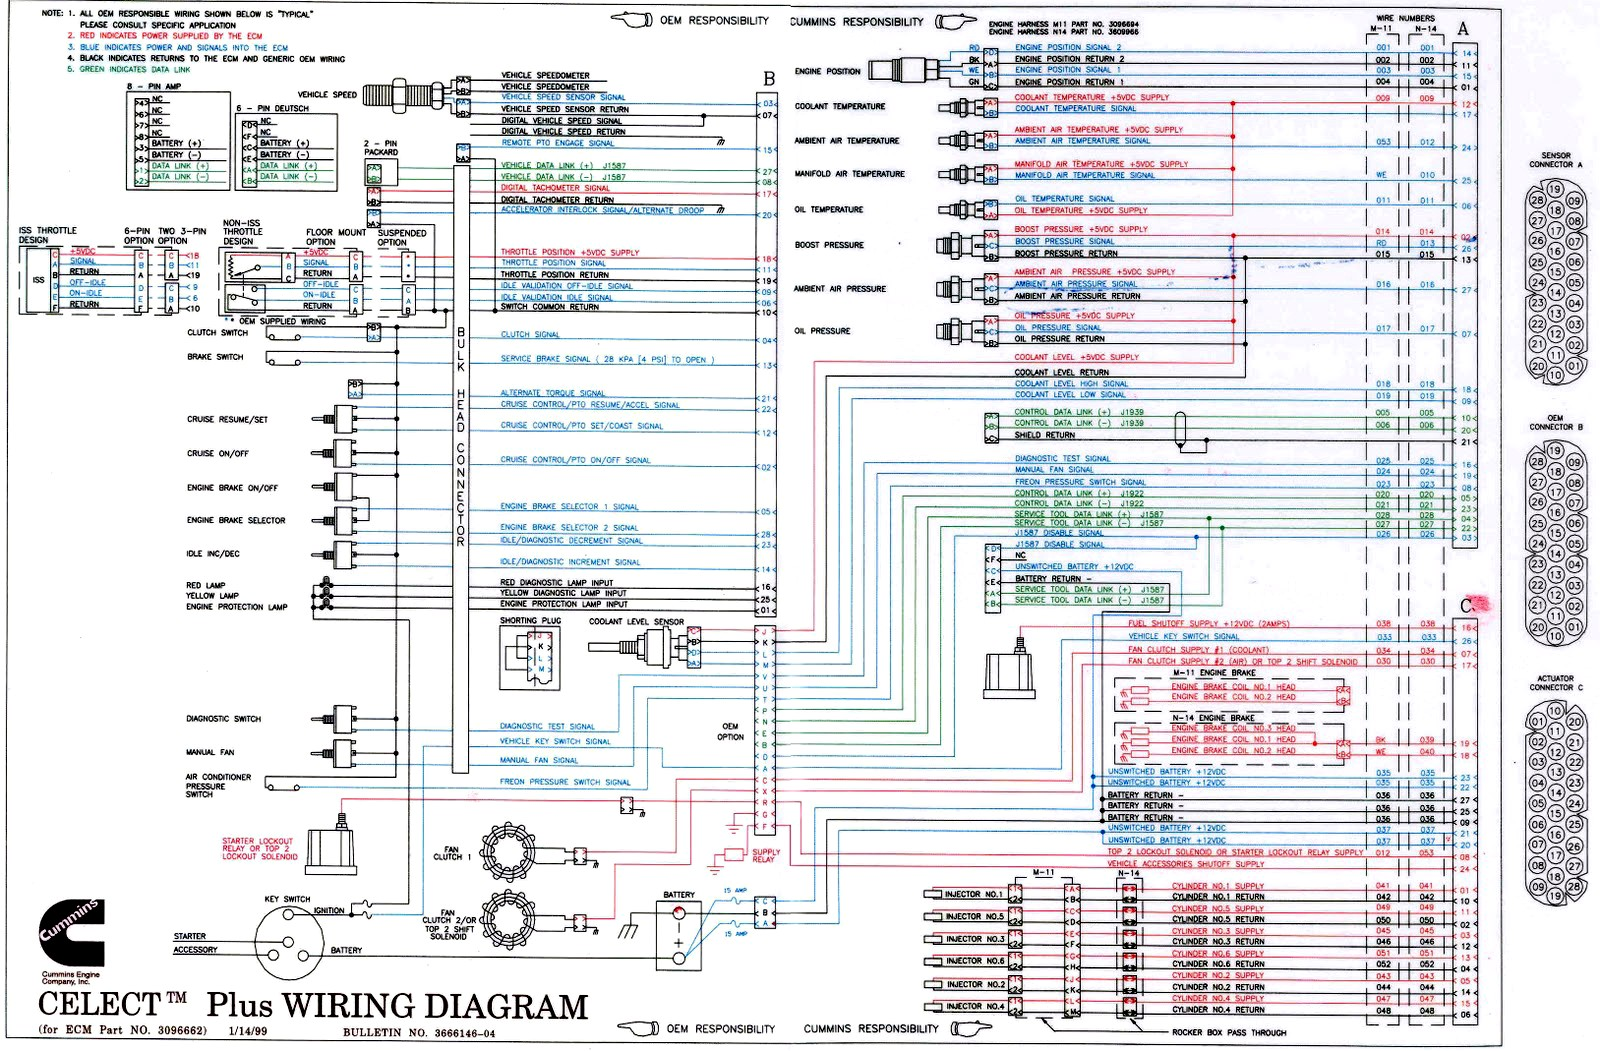 Celect+Plus+Wiring+Diagram+Cummins kenworth t660 wiring diagram kenworth t660 schematics \u2022 wiring 2009 international prostar wiring diagram at bakdesigns.co